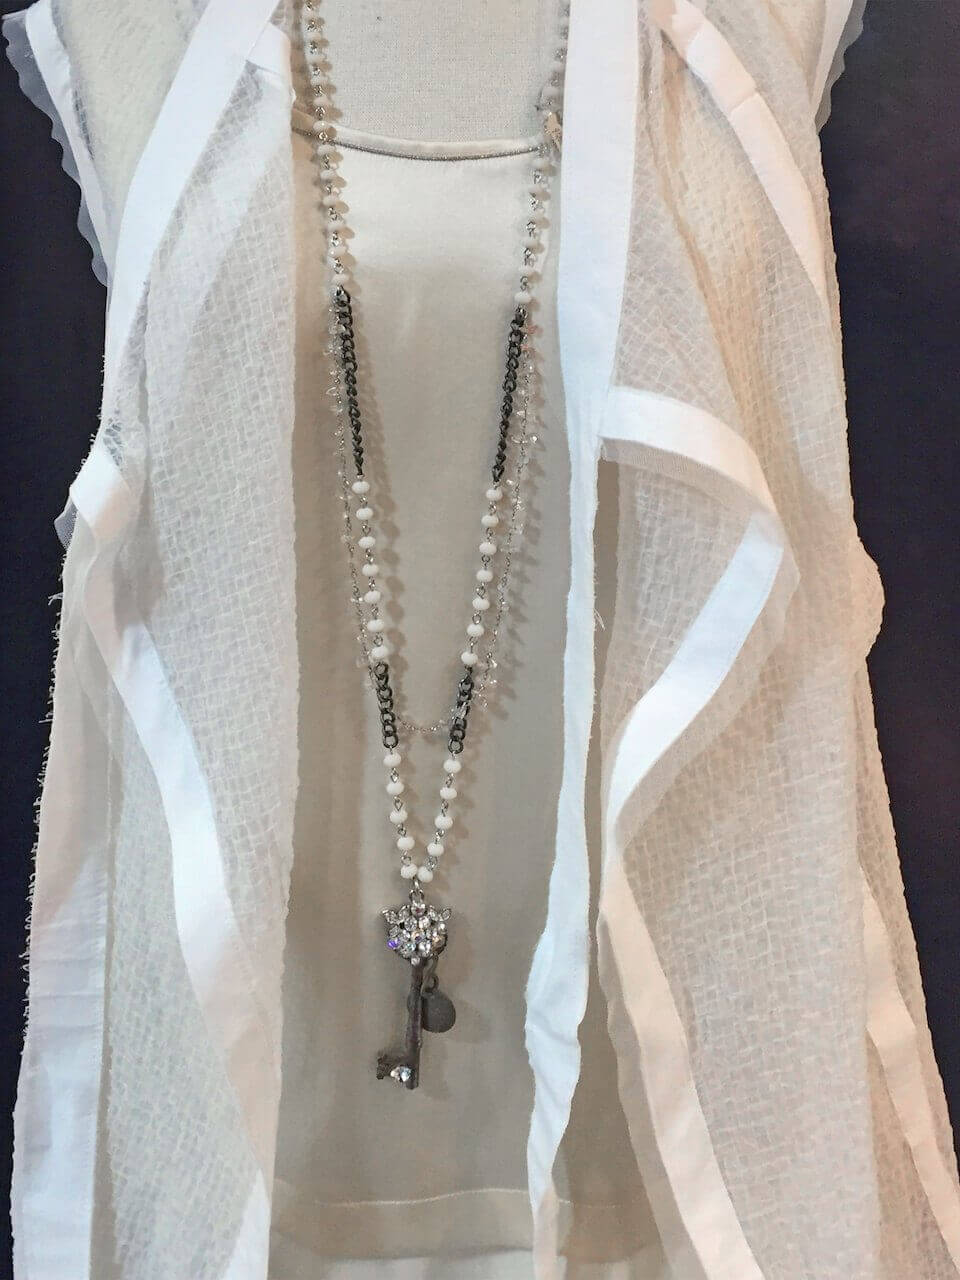 From Betsy Prince: vintage hotel key with rhinestones & rose quartz on glass bead chain, $275